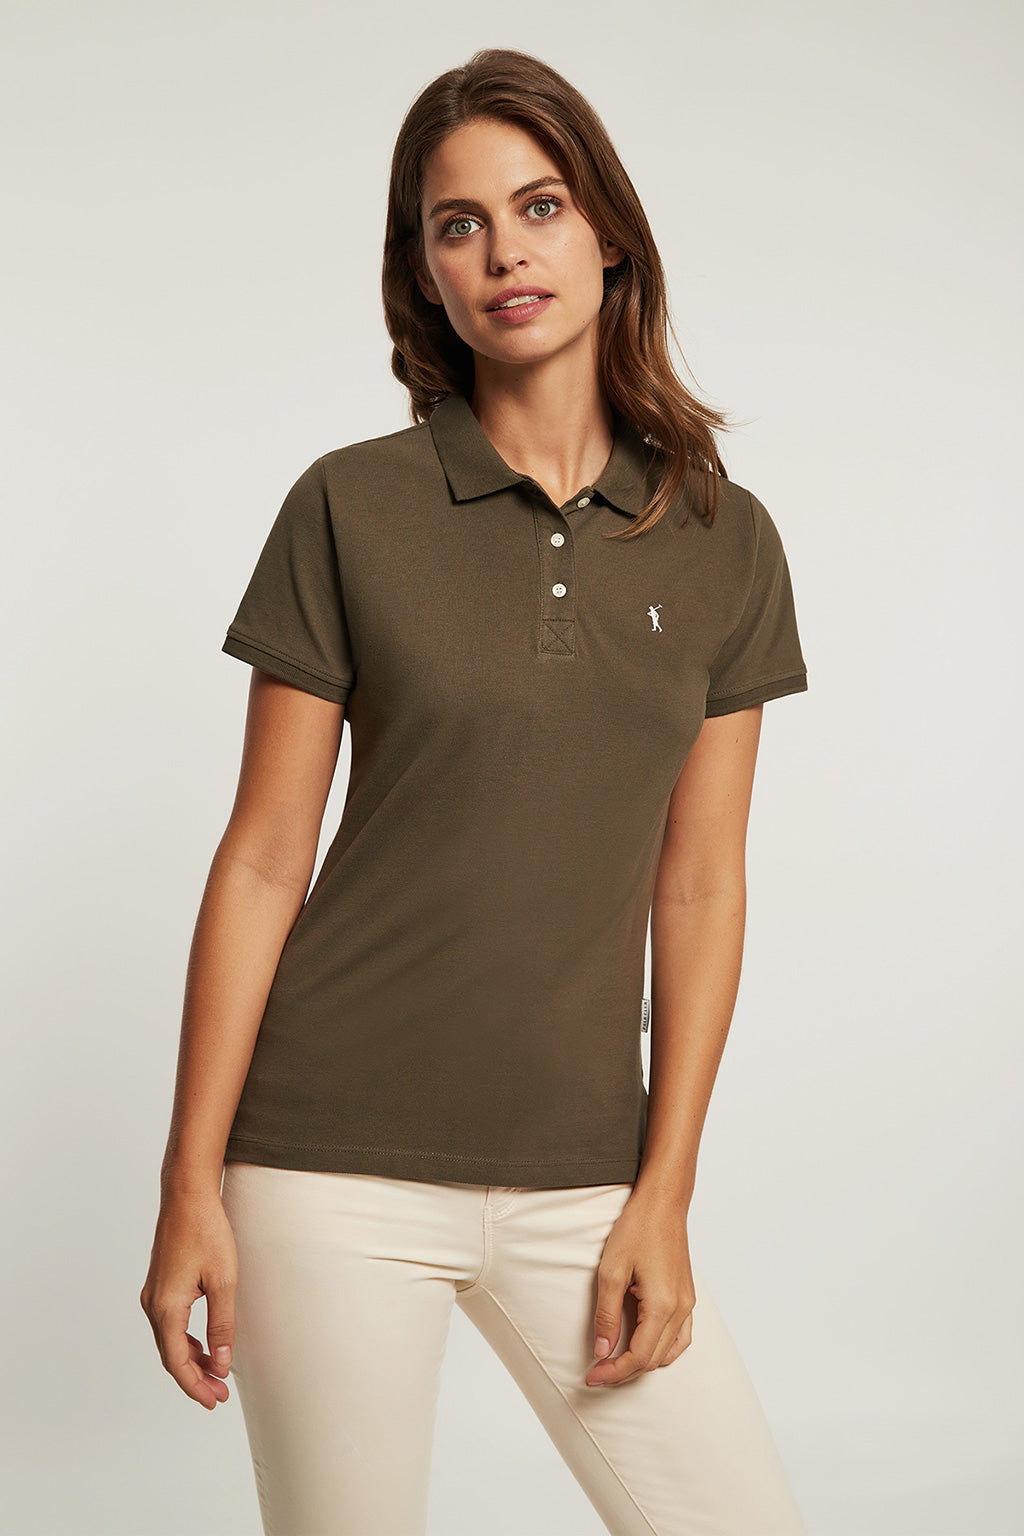 Khaki organic cotton polo shirt